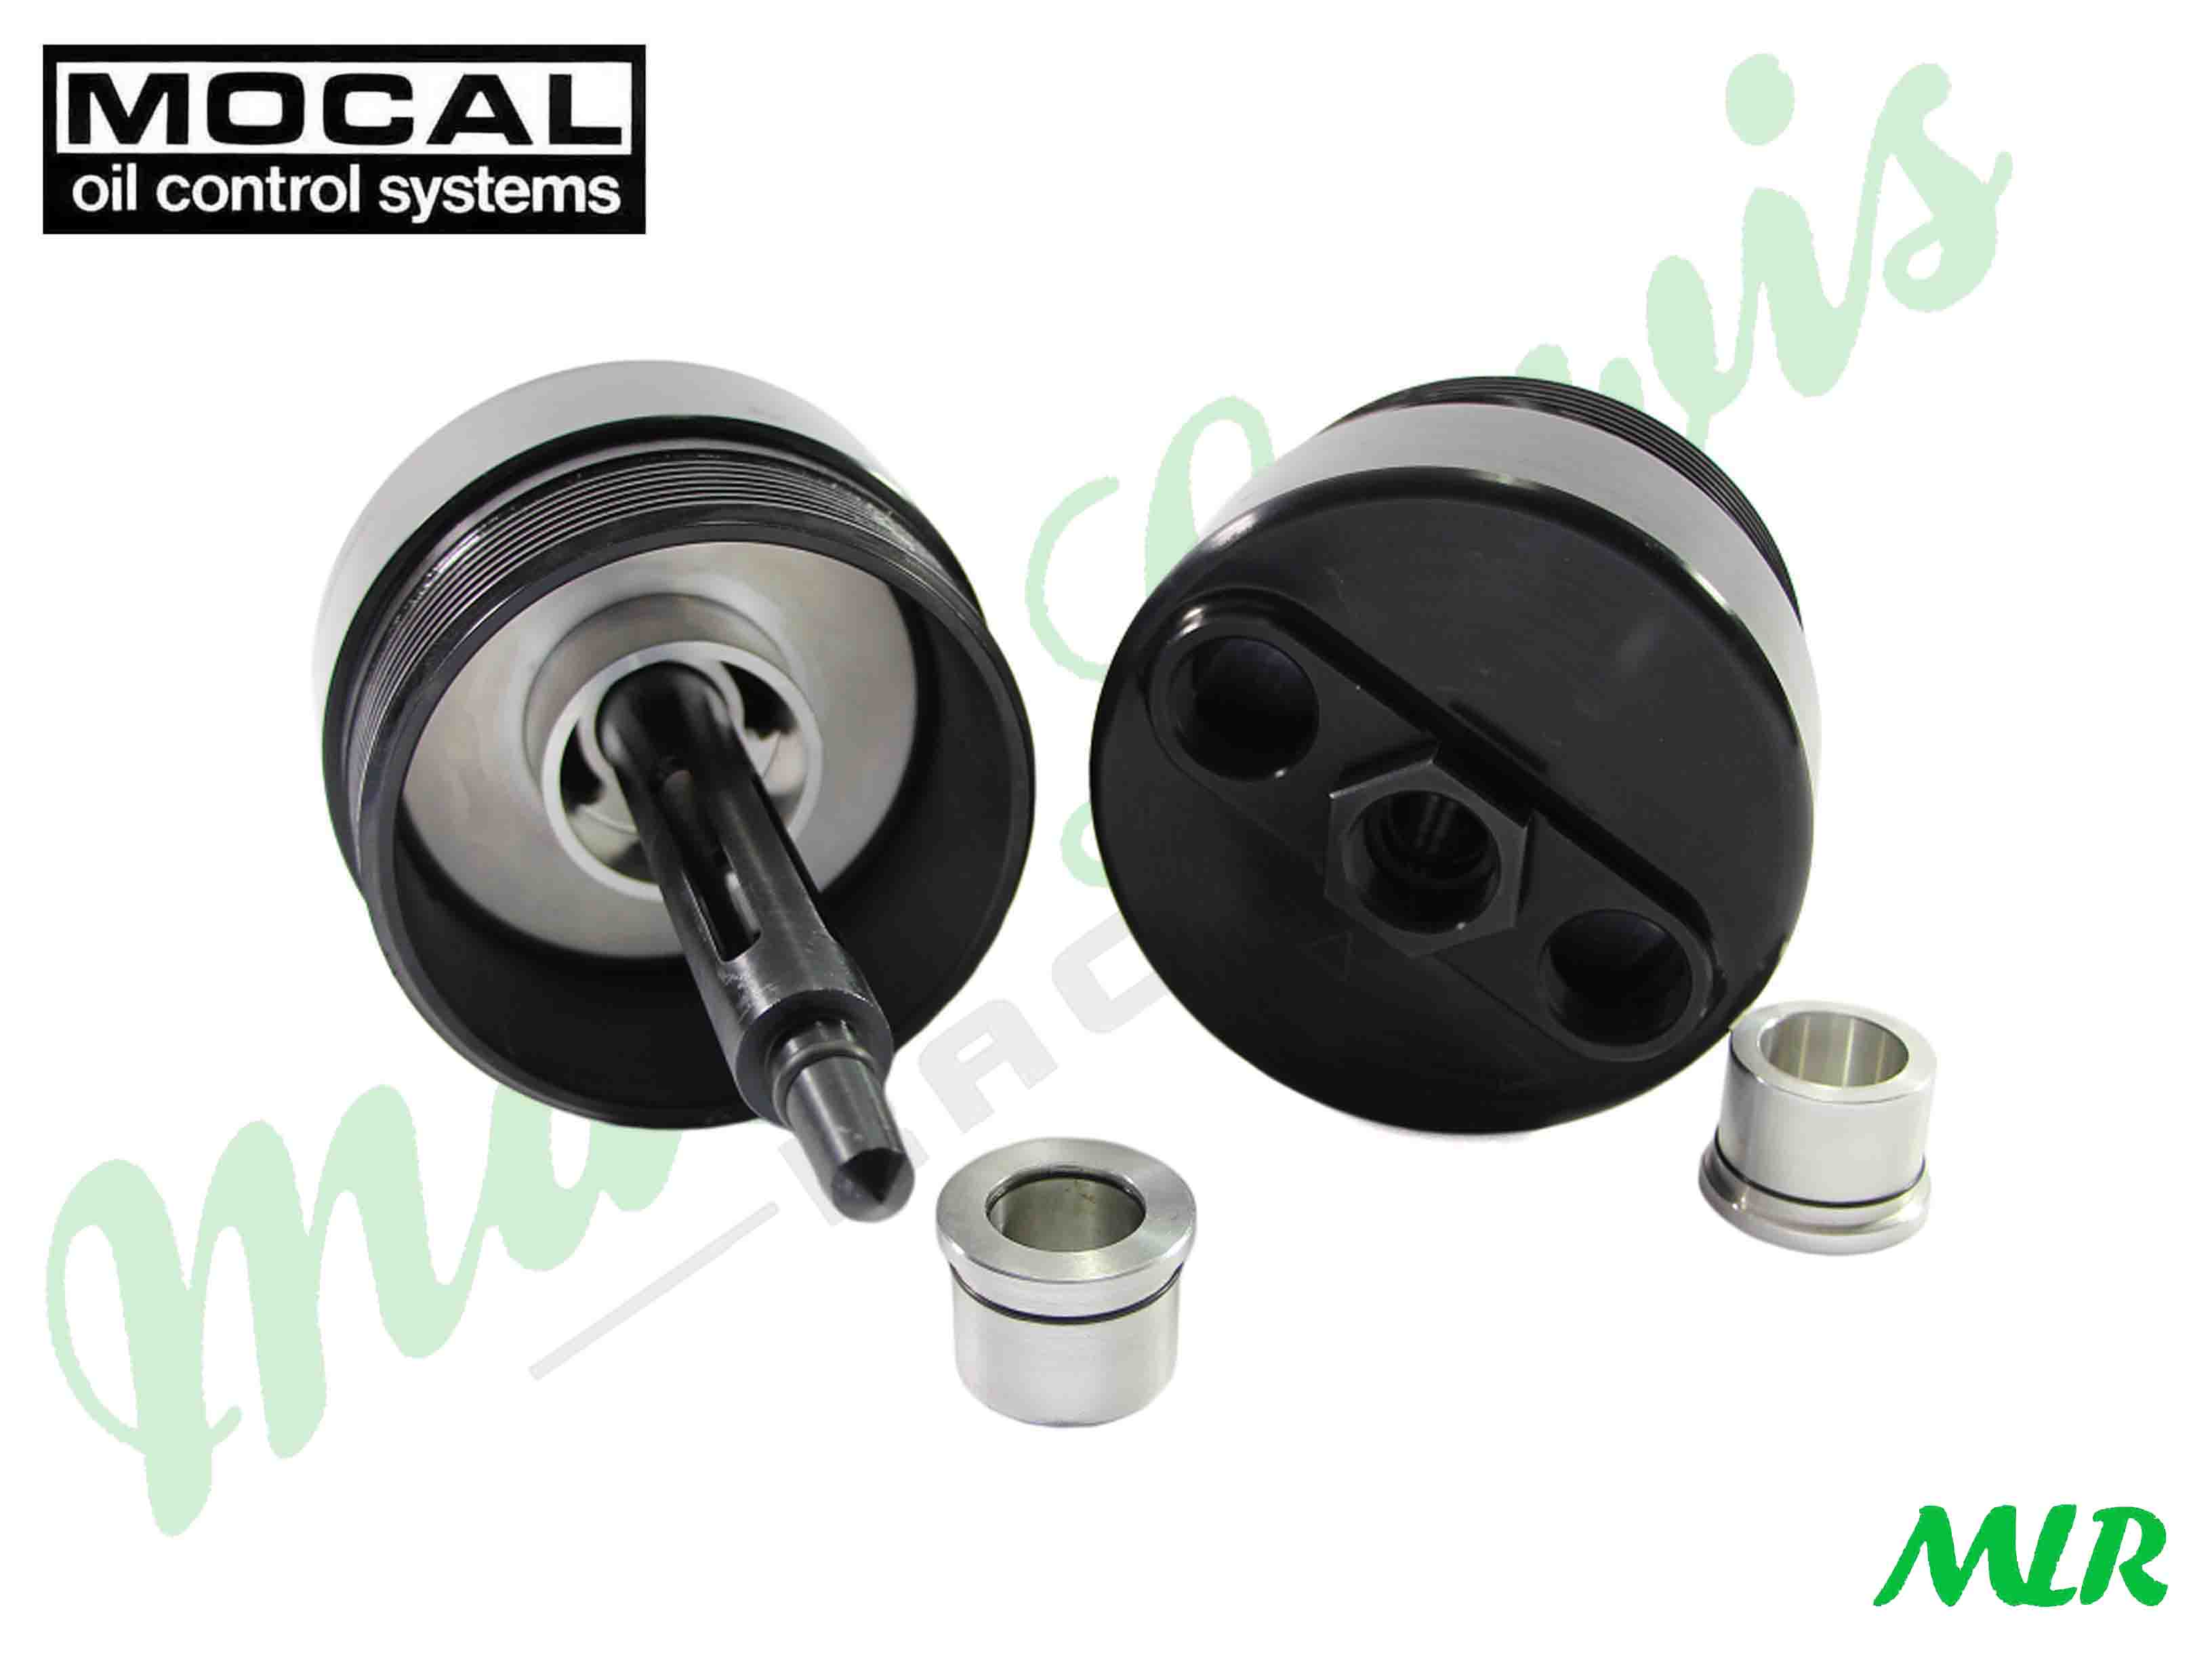 Oil Cooler Fitting Kits > 3 Series > BMW > Browse By Make